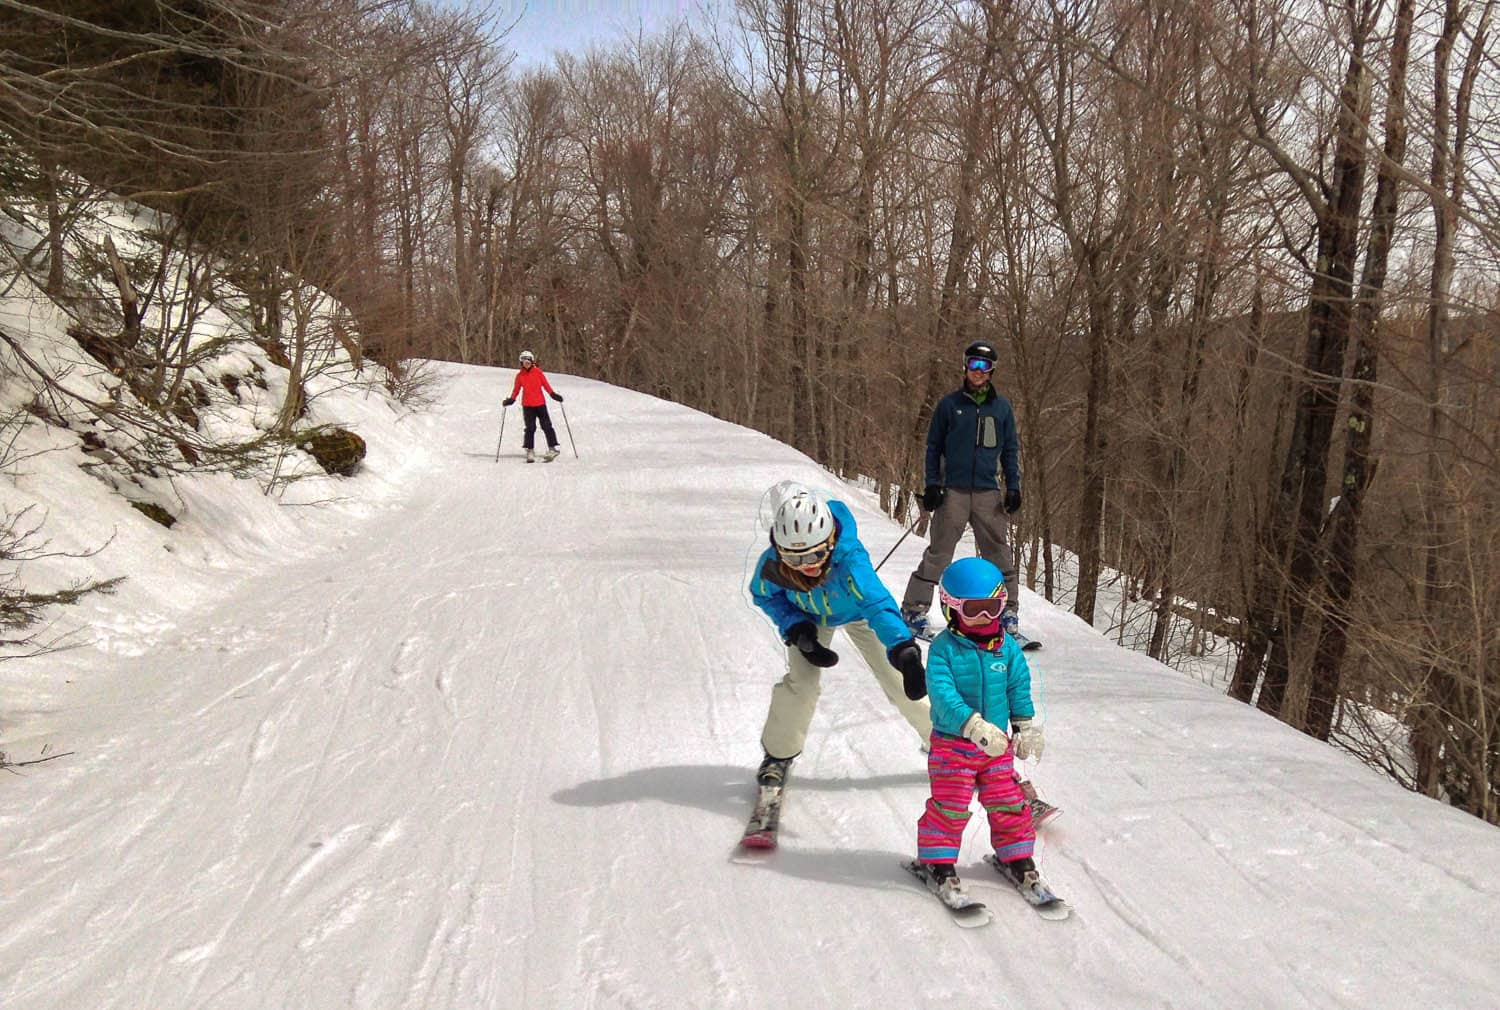 Stowe – A Sweet Family Ski Resort